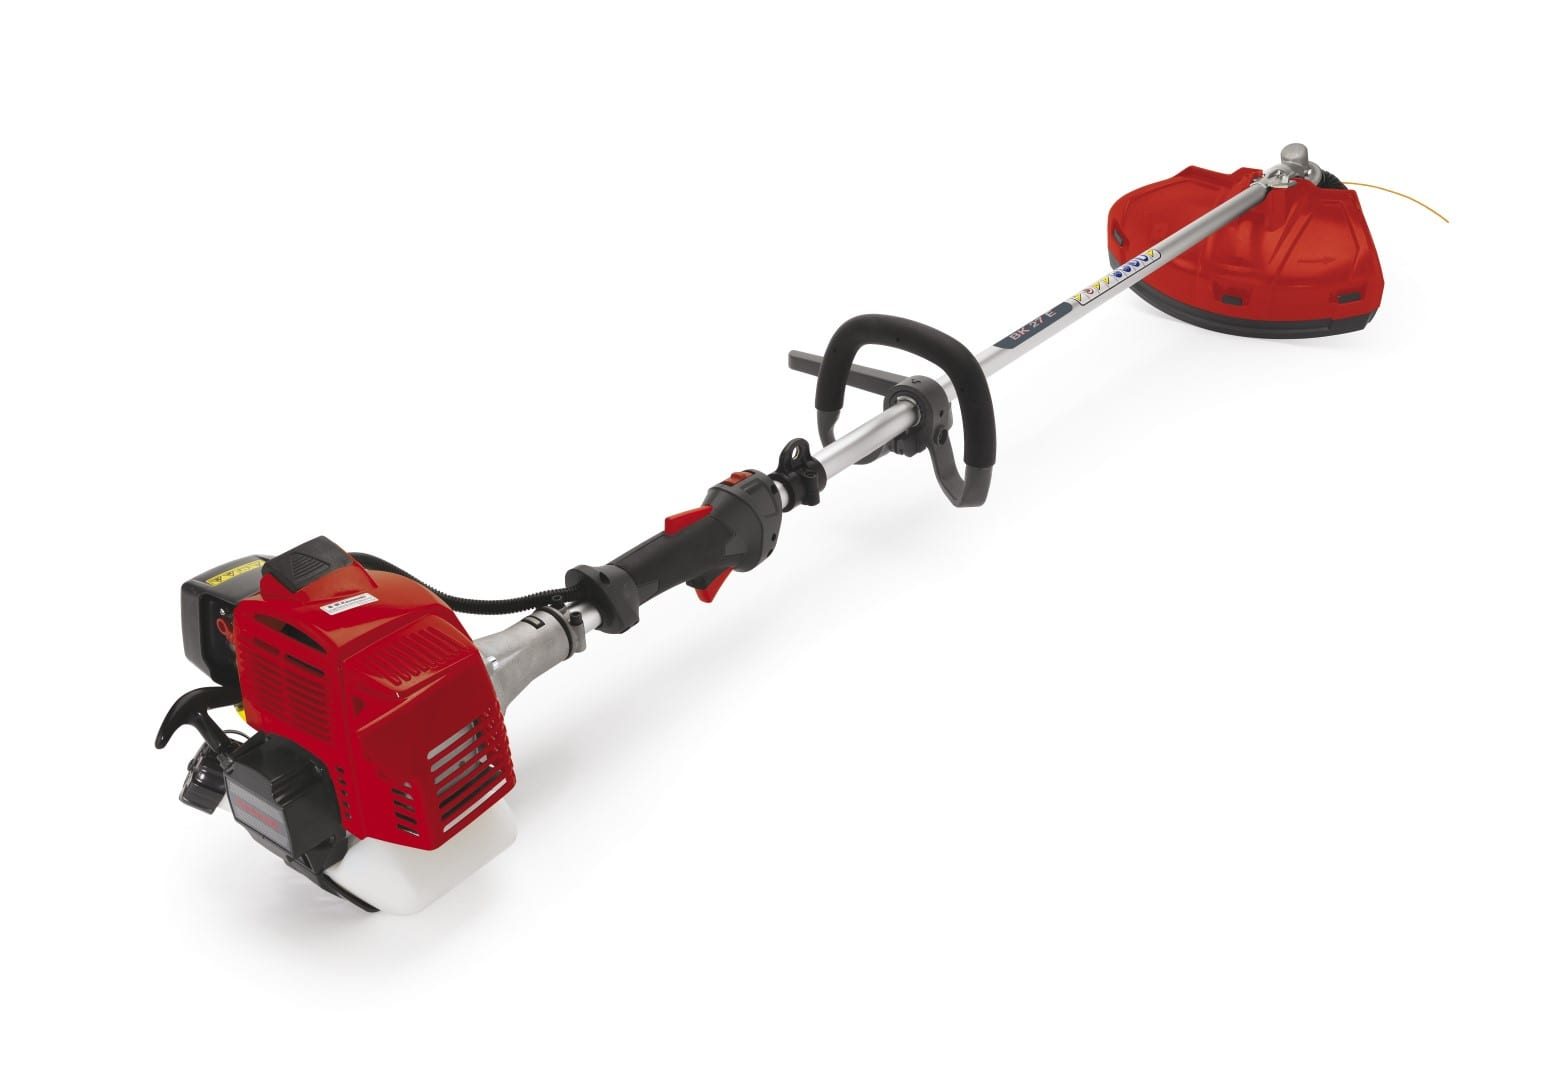 Mountfield BK27E Trimmer / Brushcutter